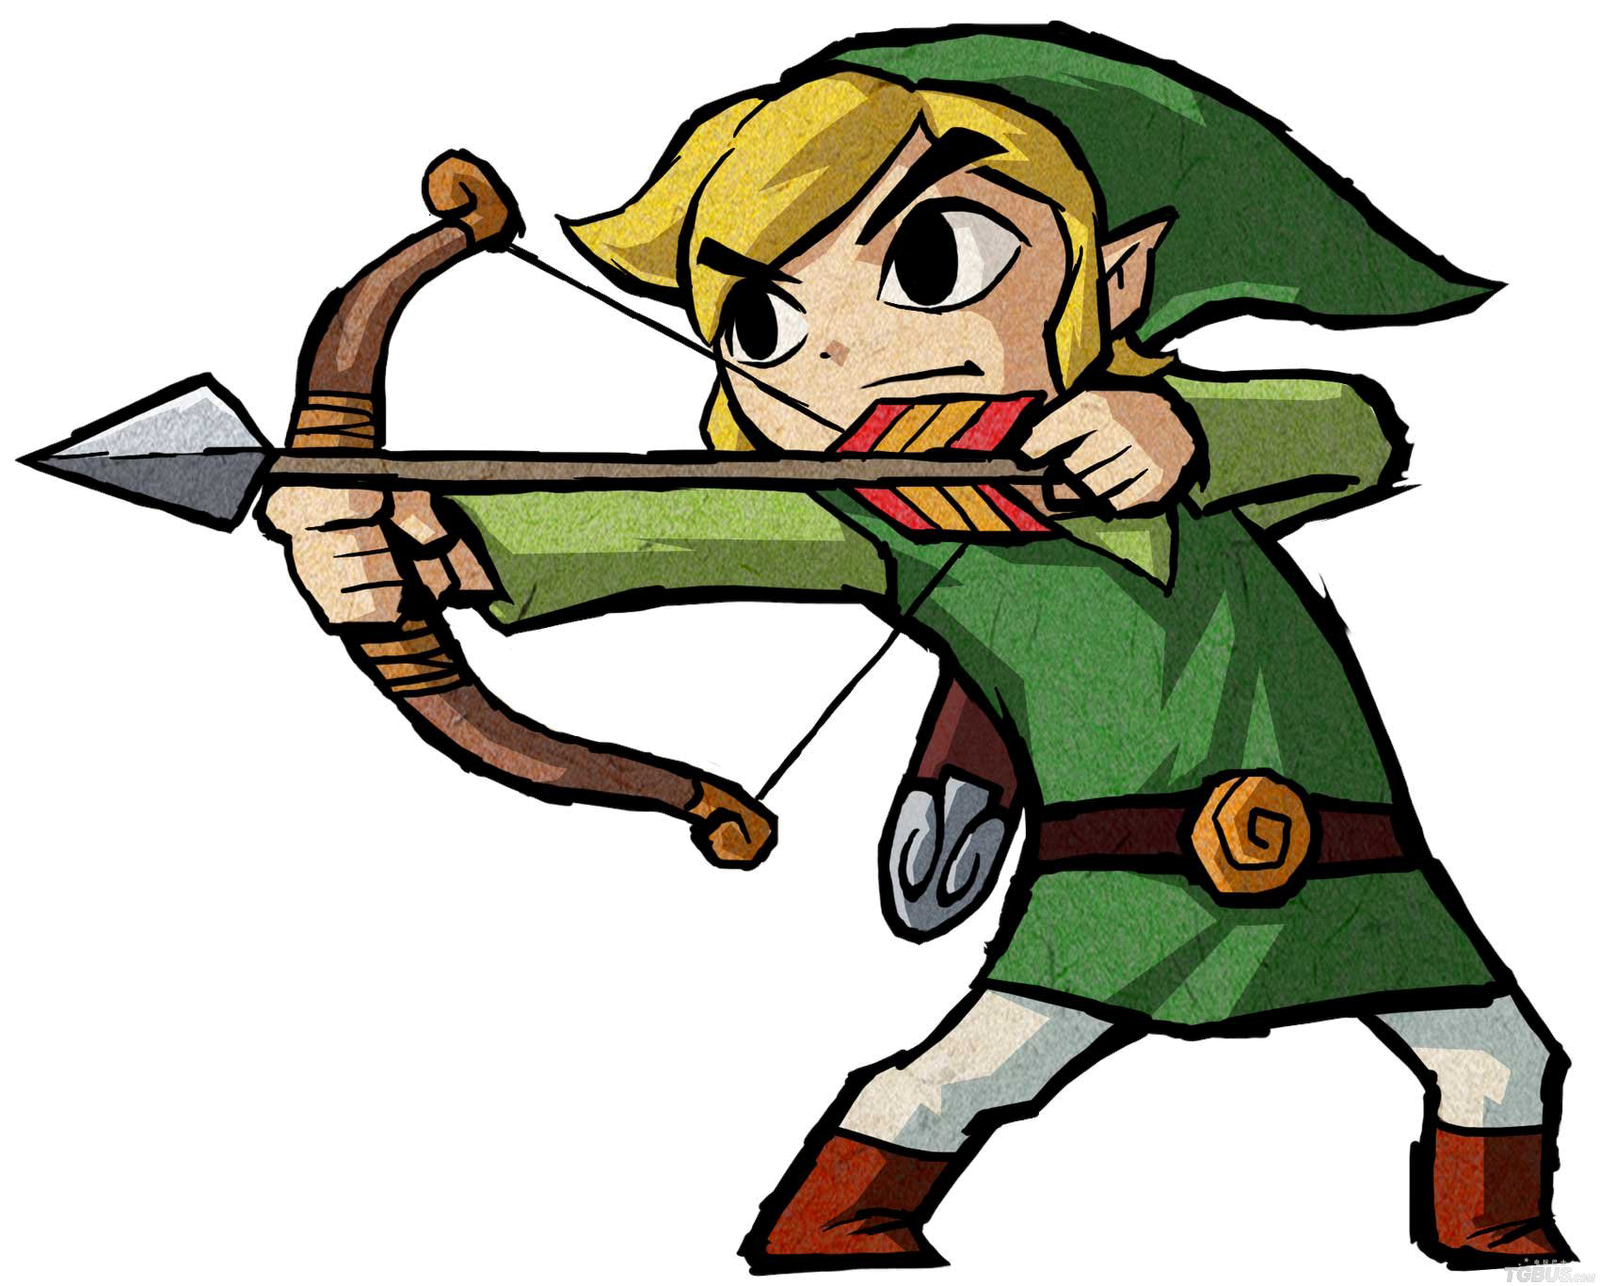 Drawing link video game character. The purpose for concept